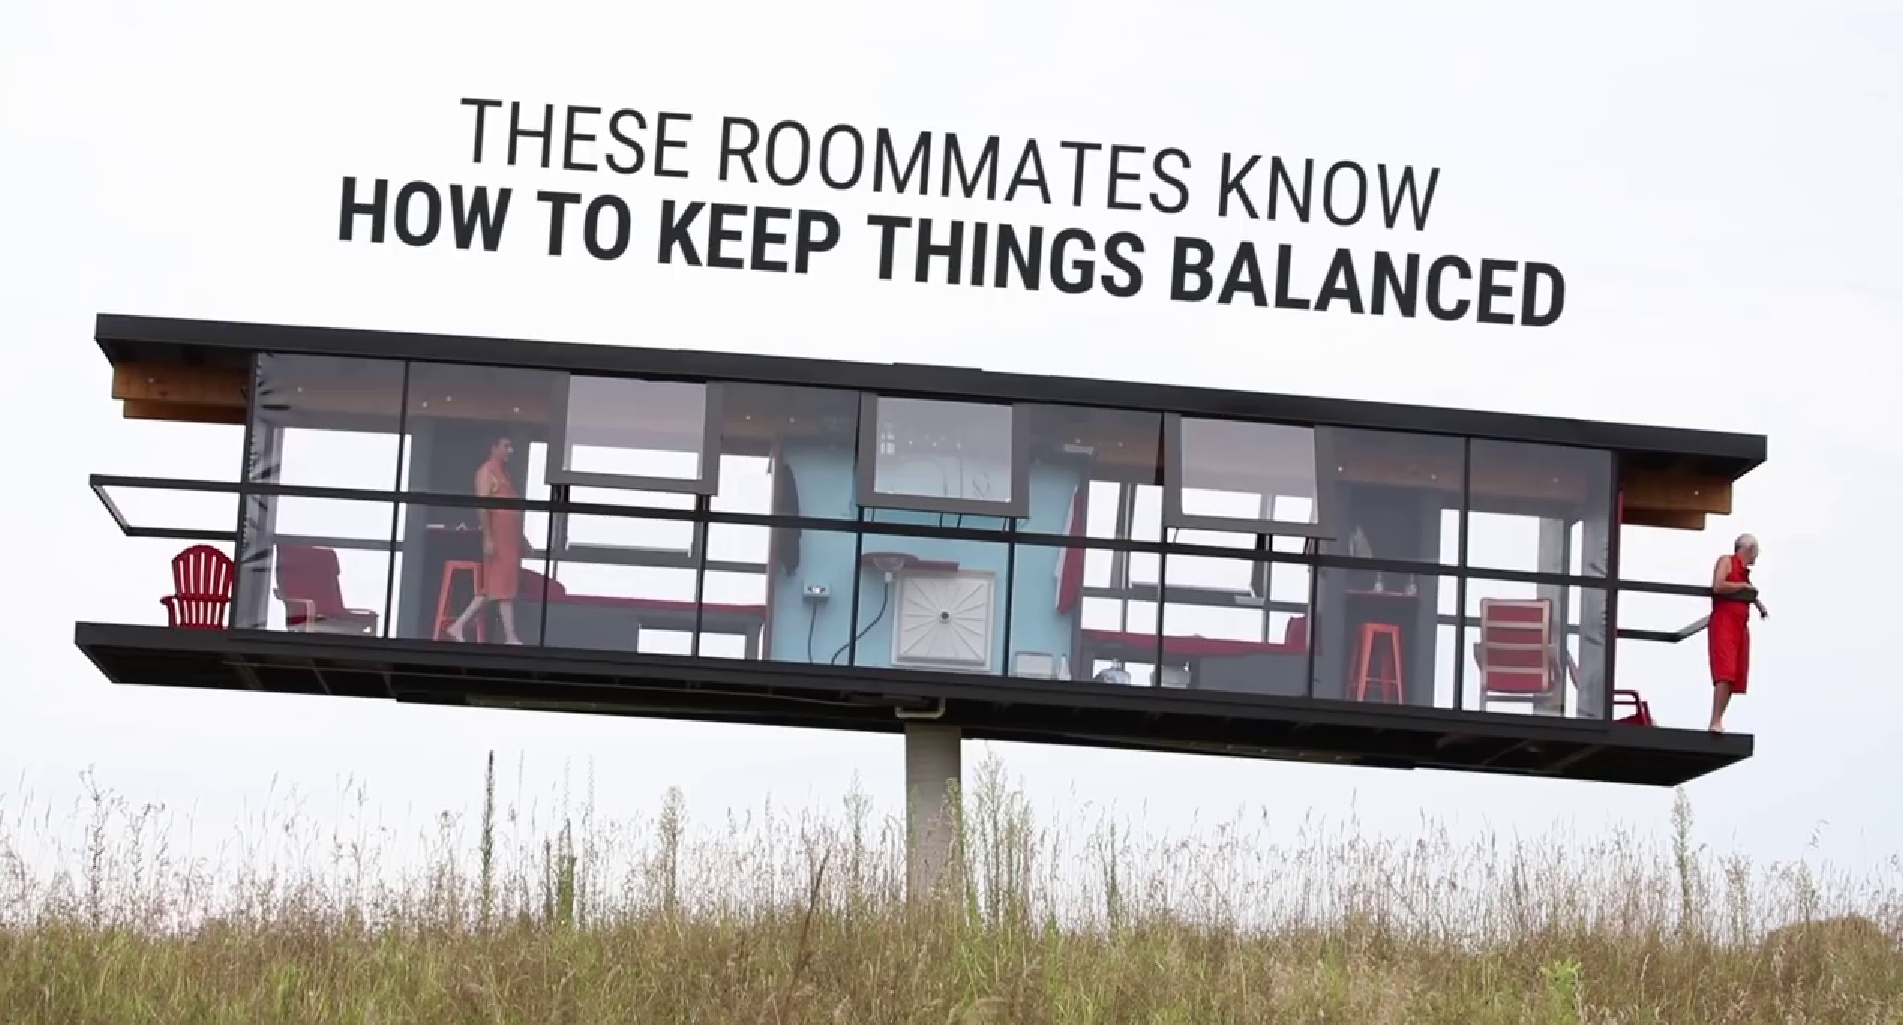 This tilting house forces roommates to cooperate